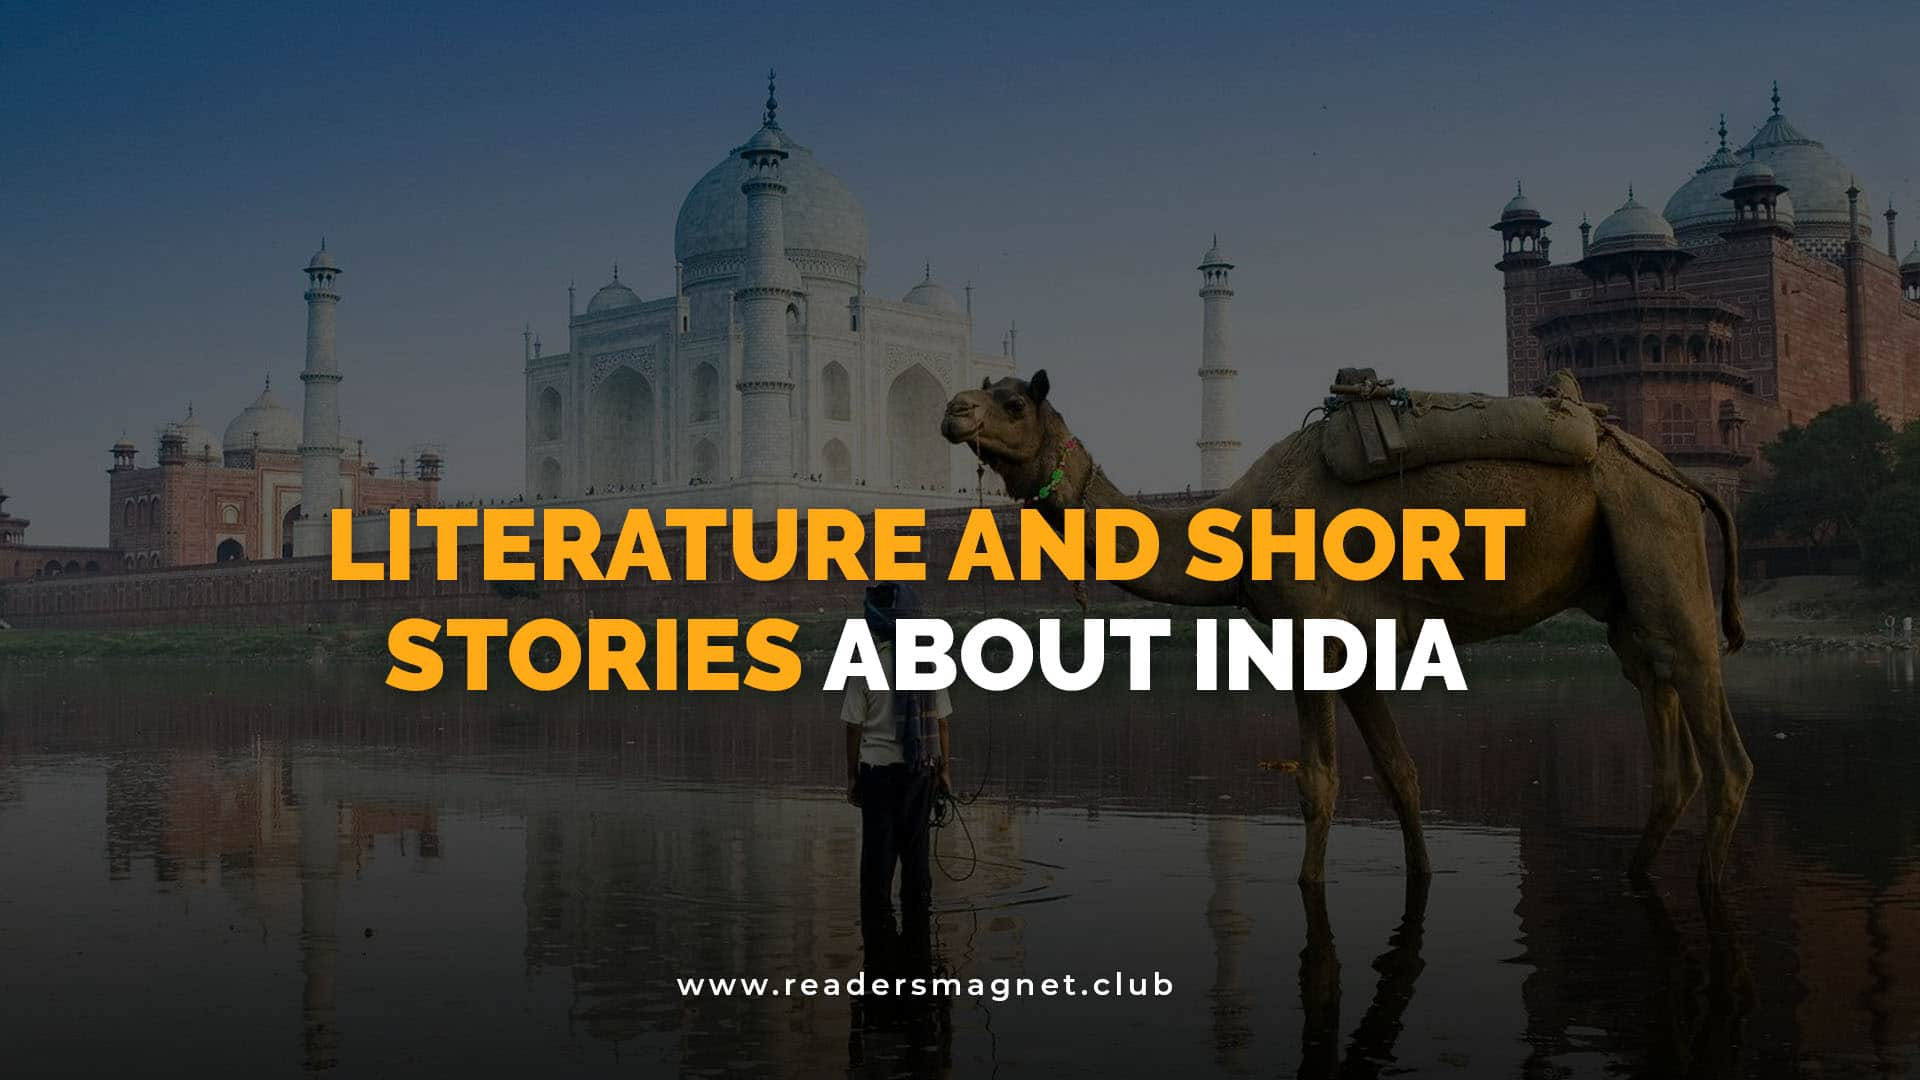 Literature and Short Stories About India banner